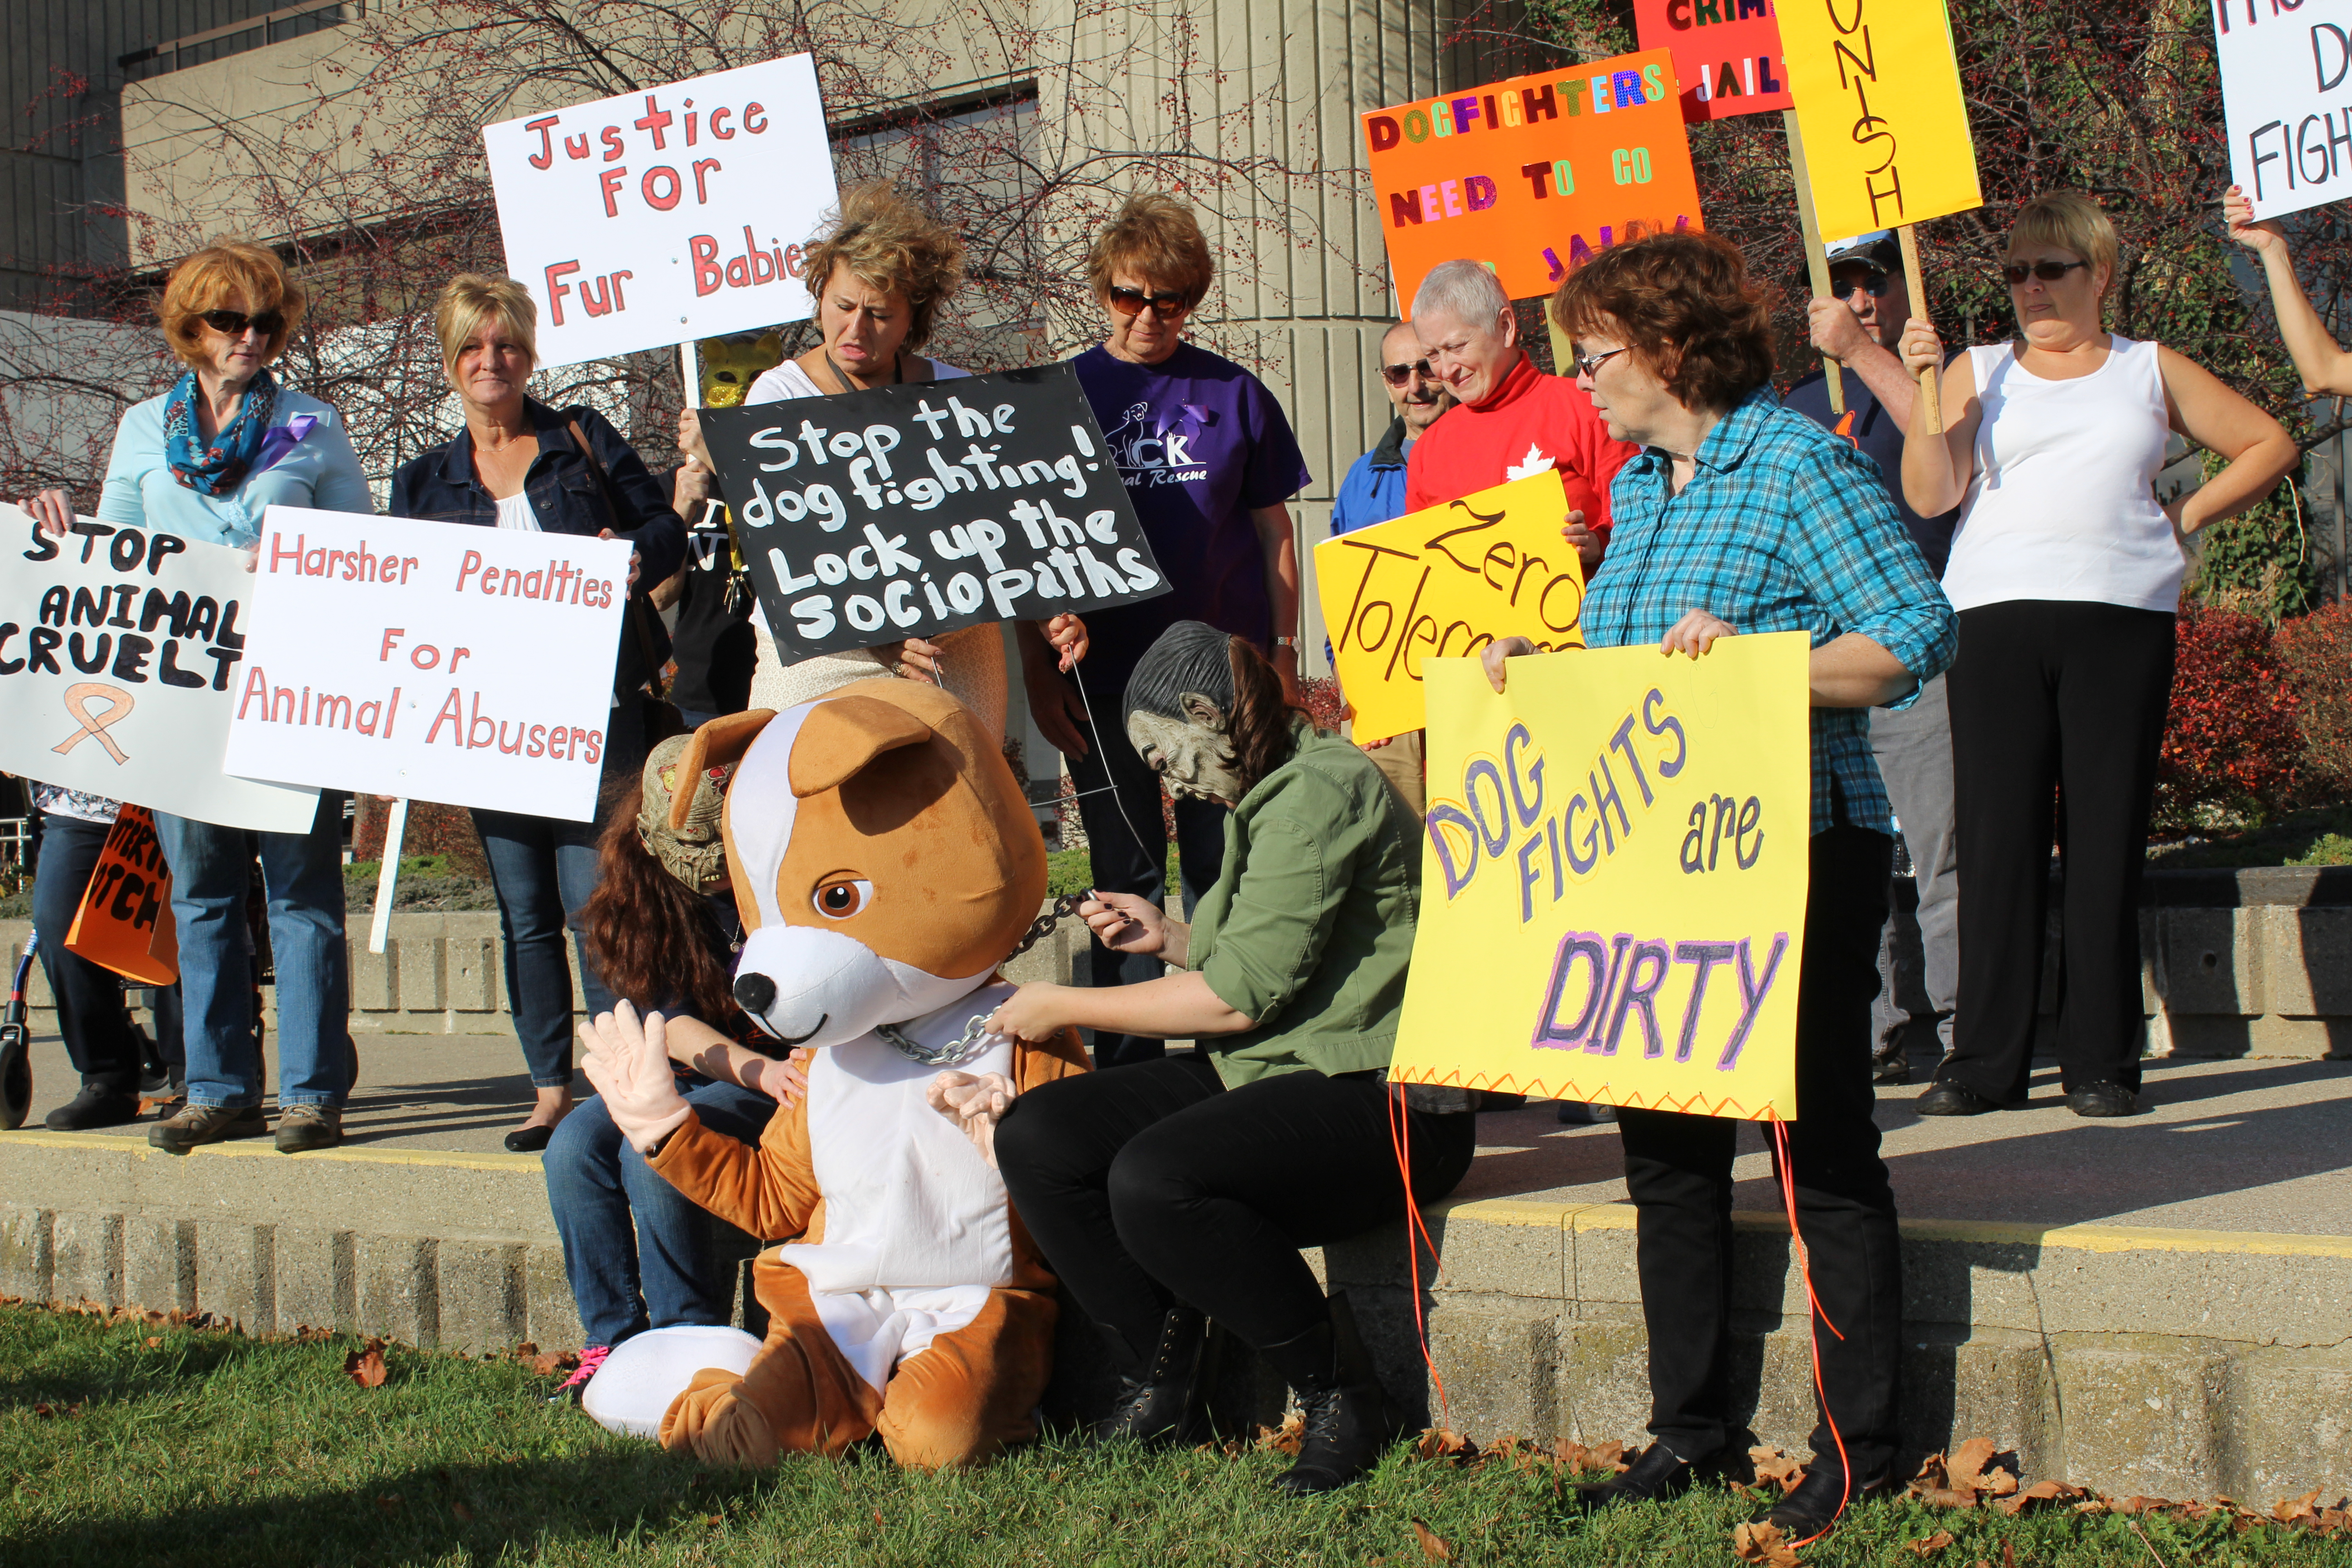 Protesters re-enact animal cruelty outside of the Chatham Courthouse. November 5, 2015. (Photo by Matt Weverink)